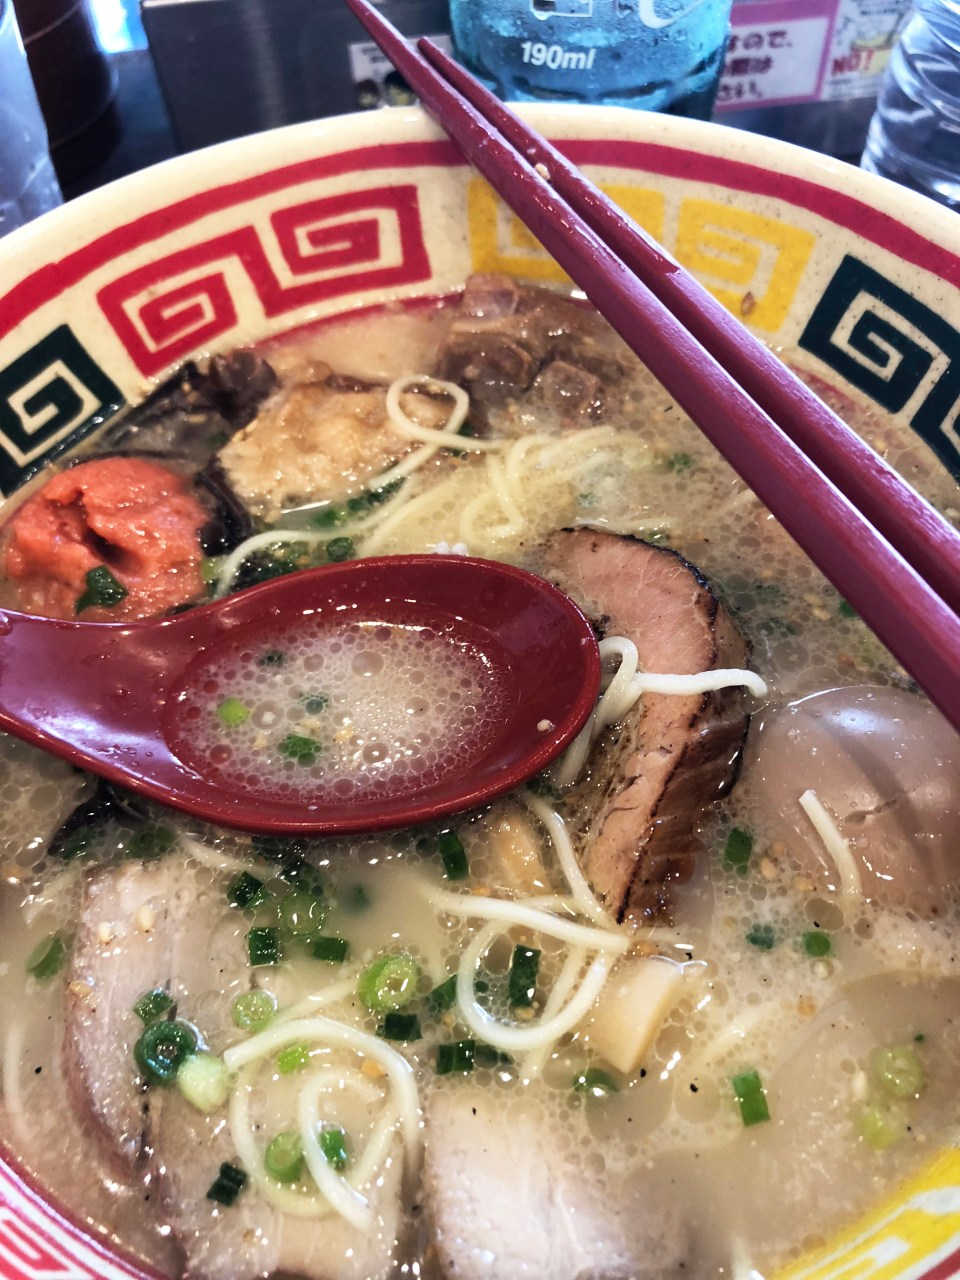 Kyushu Jangara - Ramen with Pork Broth